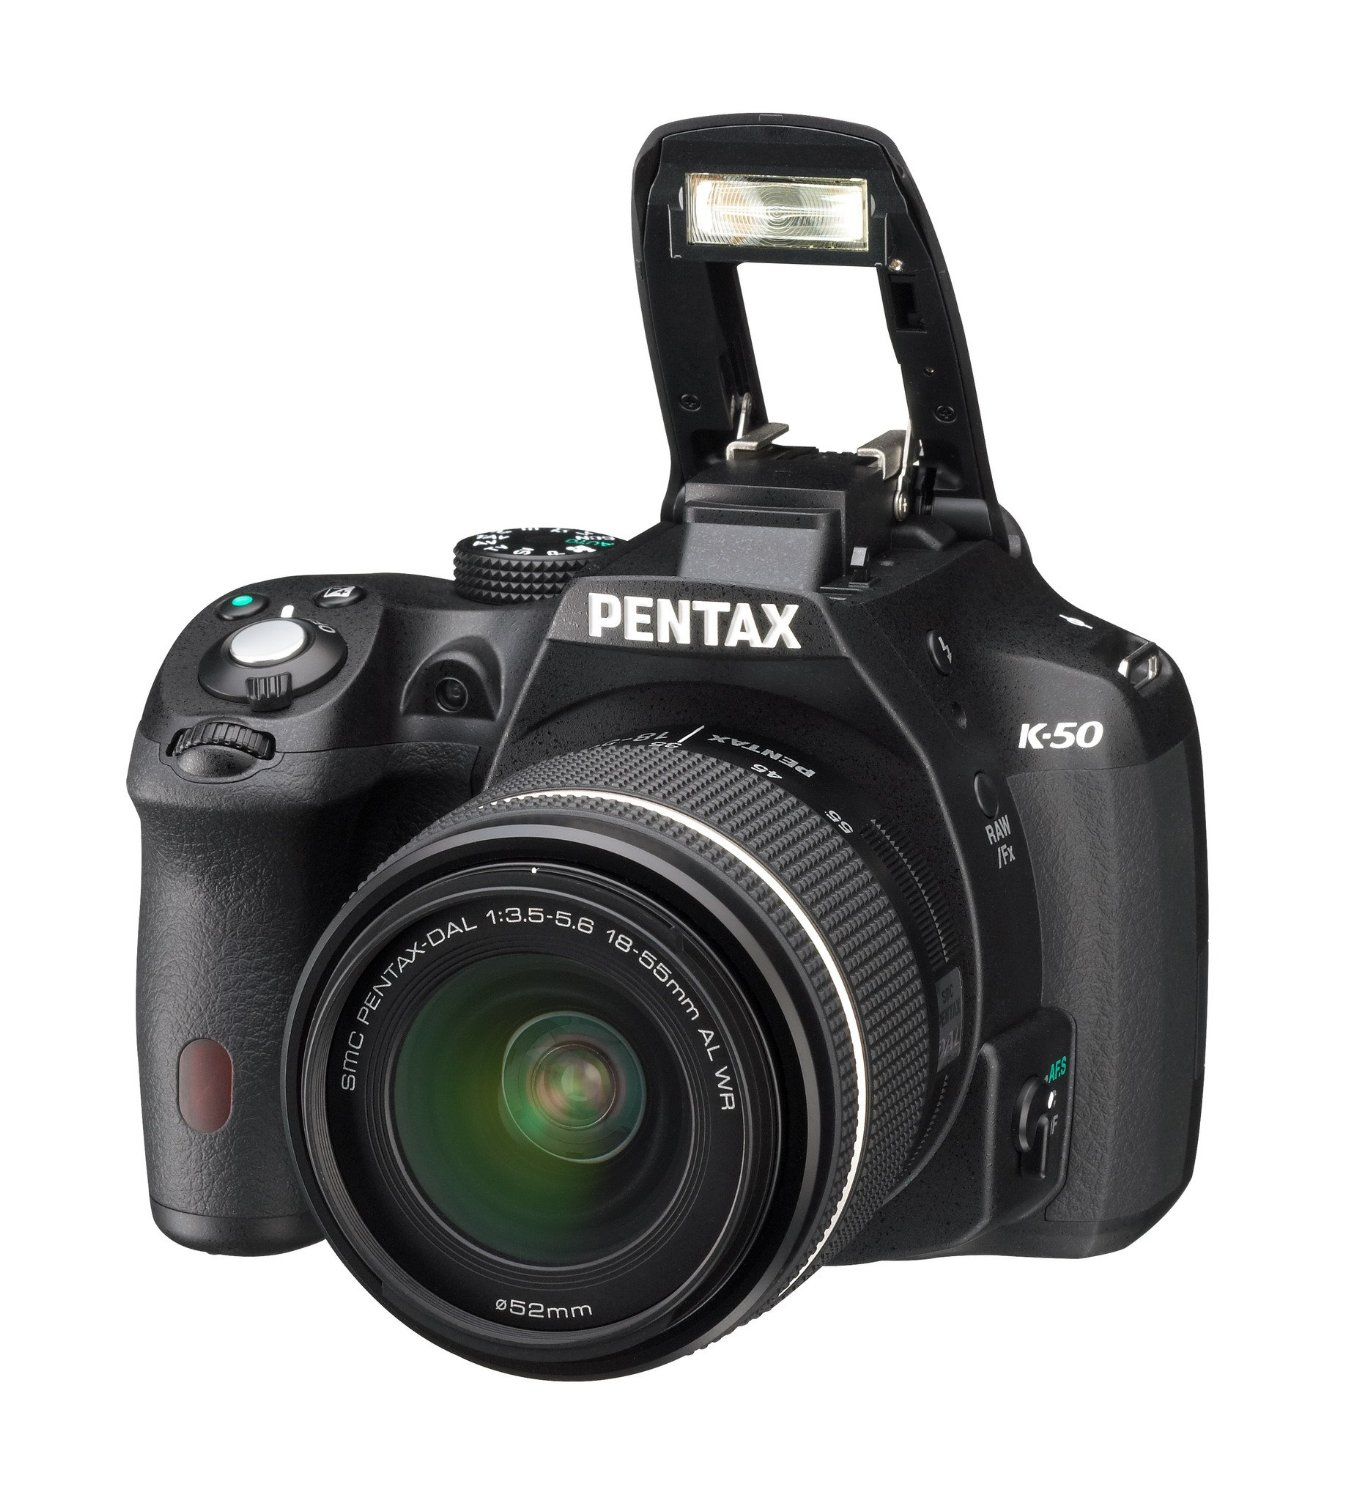 Pentax K-50 DSLR Camera with DAL 18-55 mm WR Lens Kit, 3 inch LCD - Black